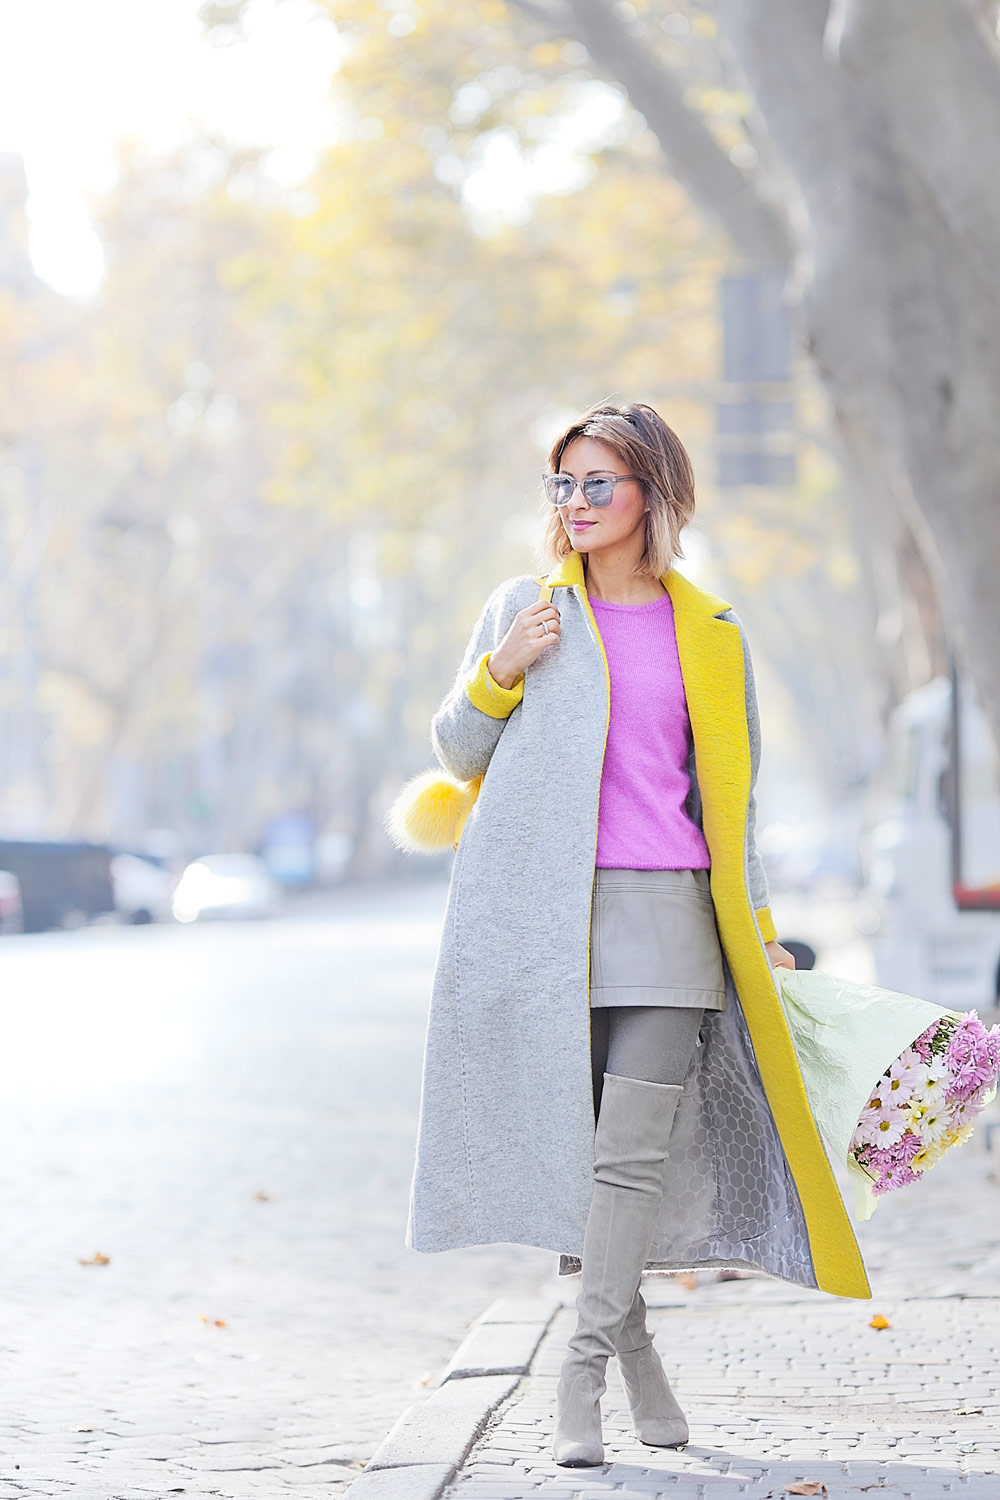 fall+outfit+ideas+stuart+weitzman+boots-galant-girl